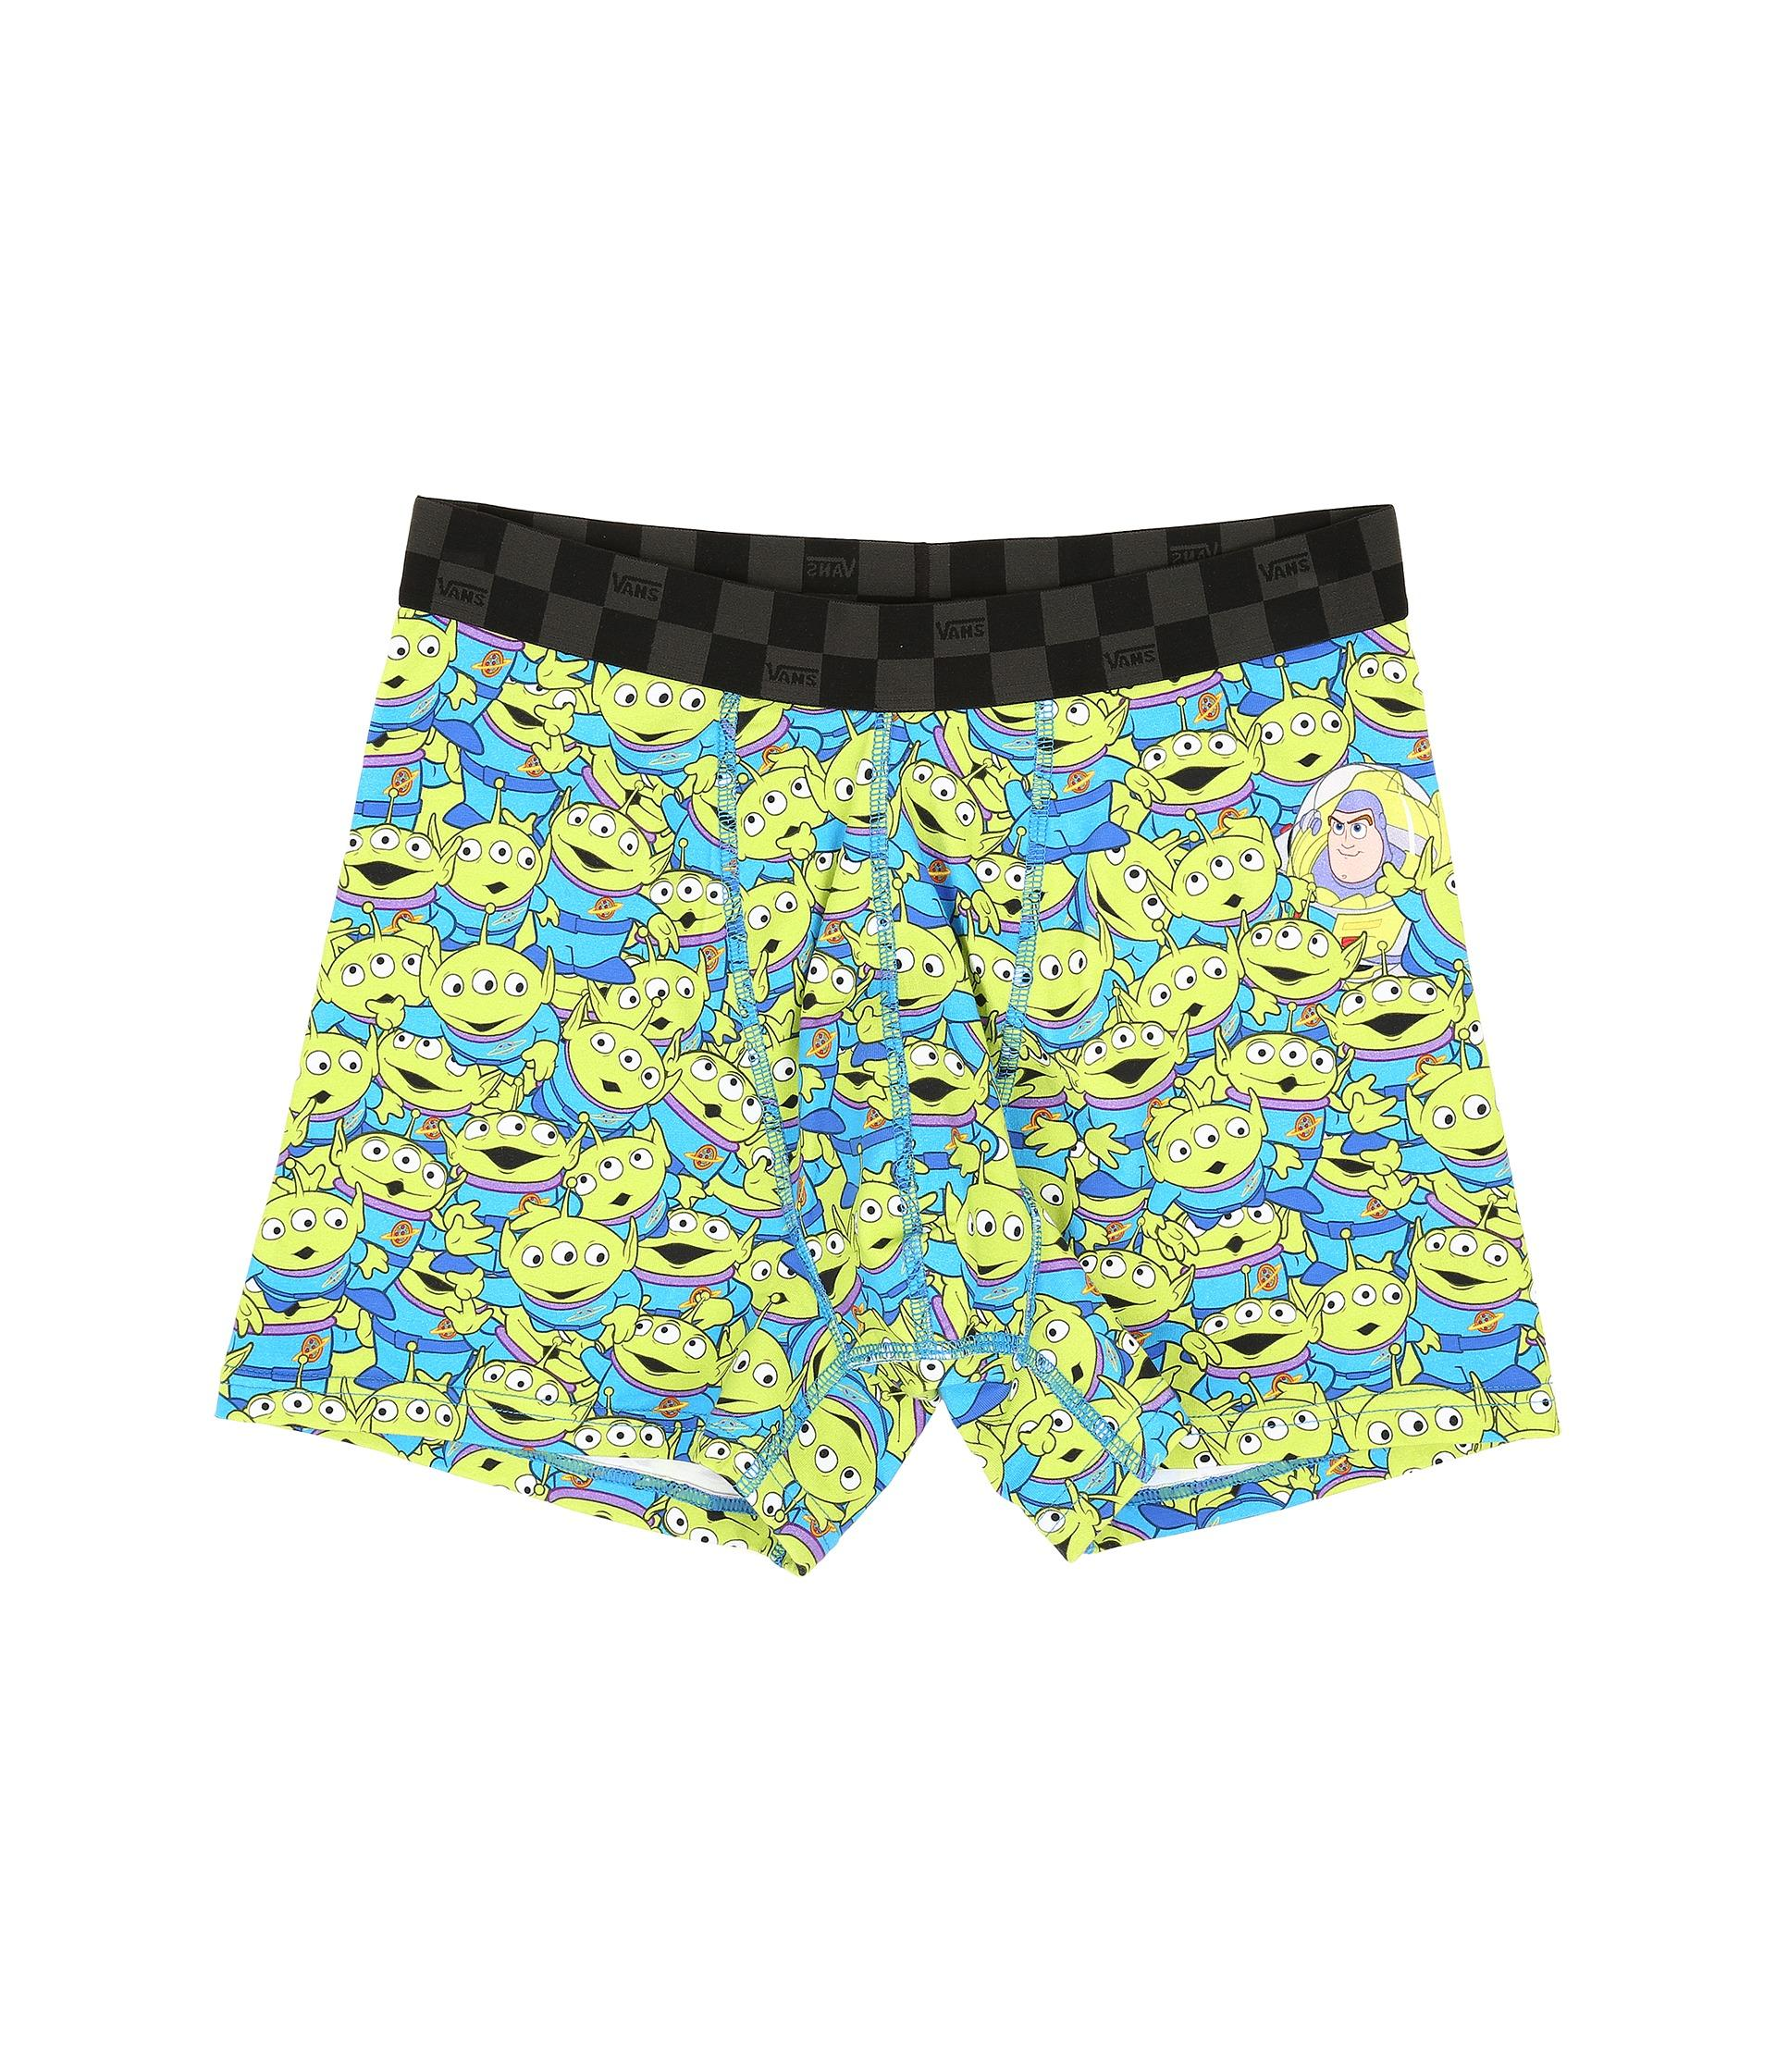 Lyst Vans Toy Story Knit Boxers In Green For Men